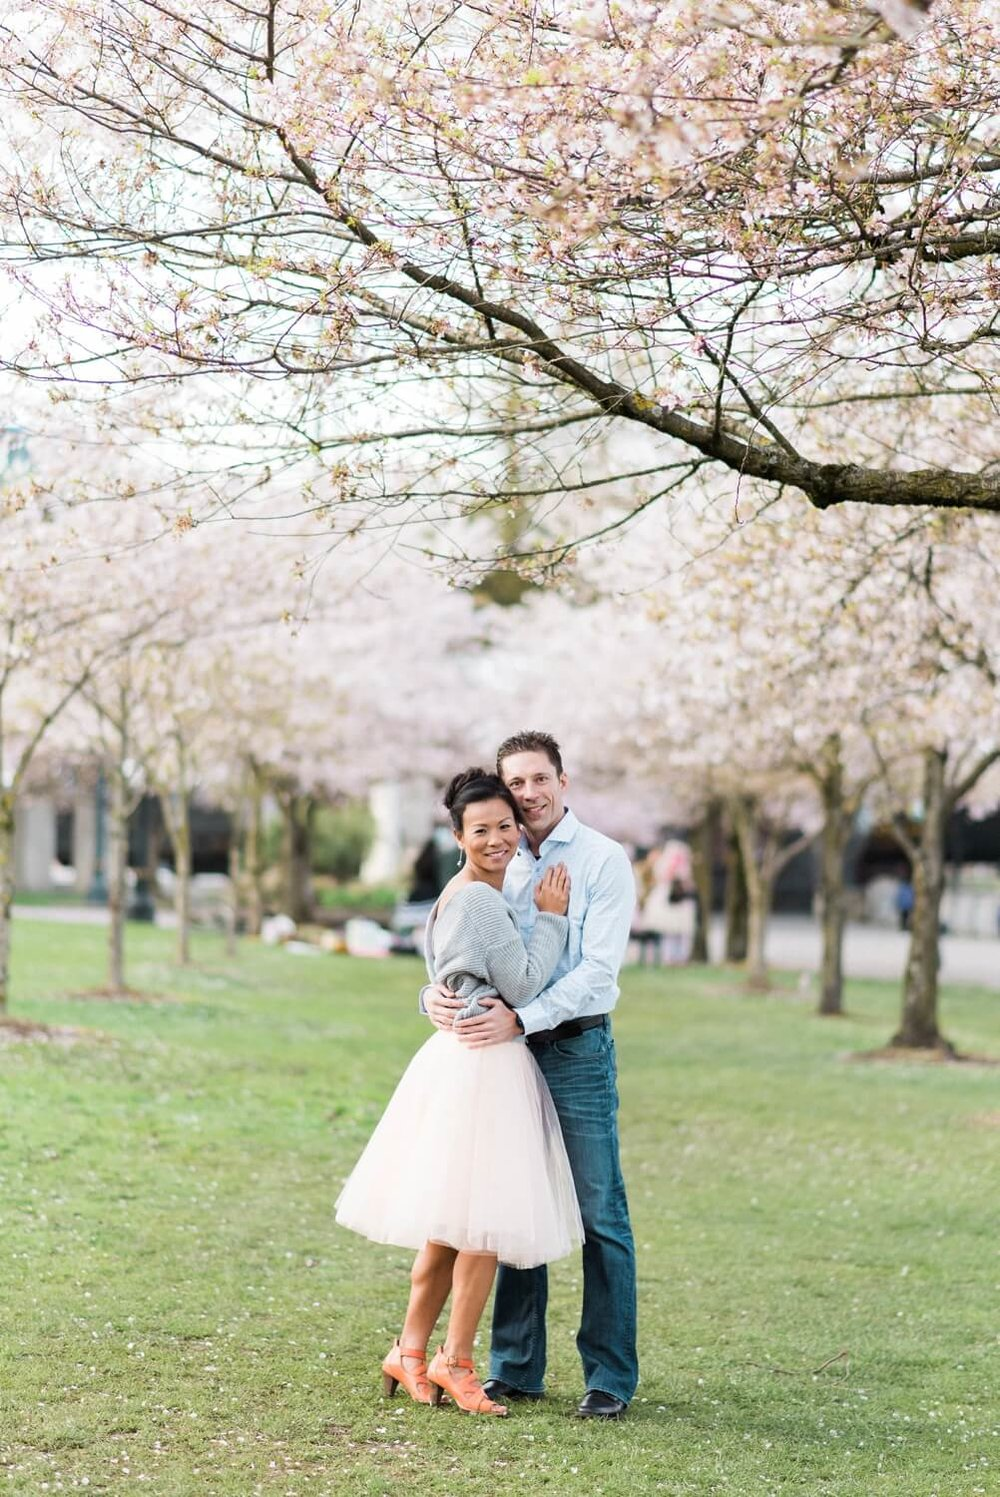 portland-waterfront-engagement-cherry-blossom-cathedral-park-sokhorn-jay-012_cr.jpg